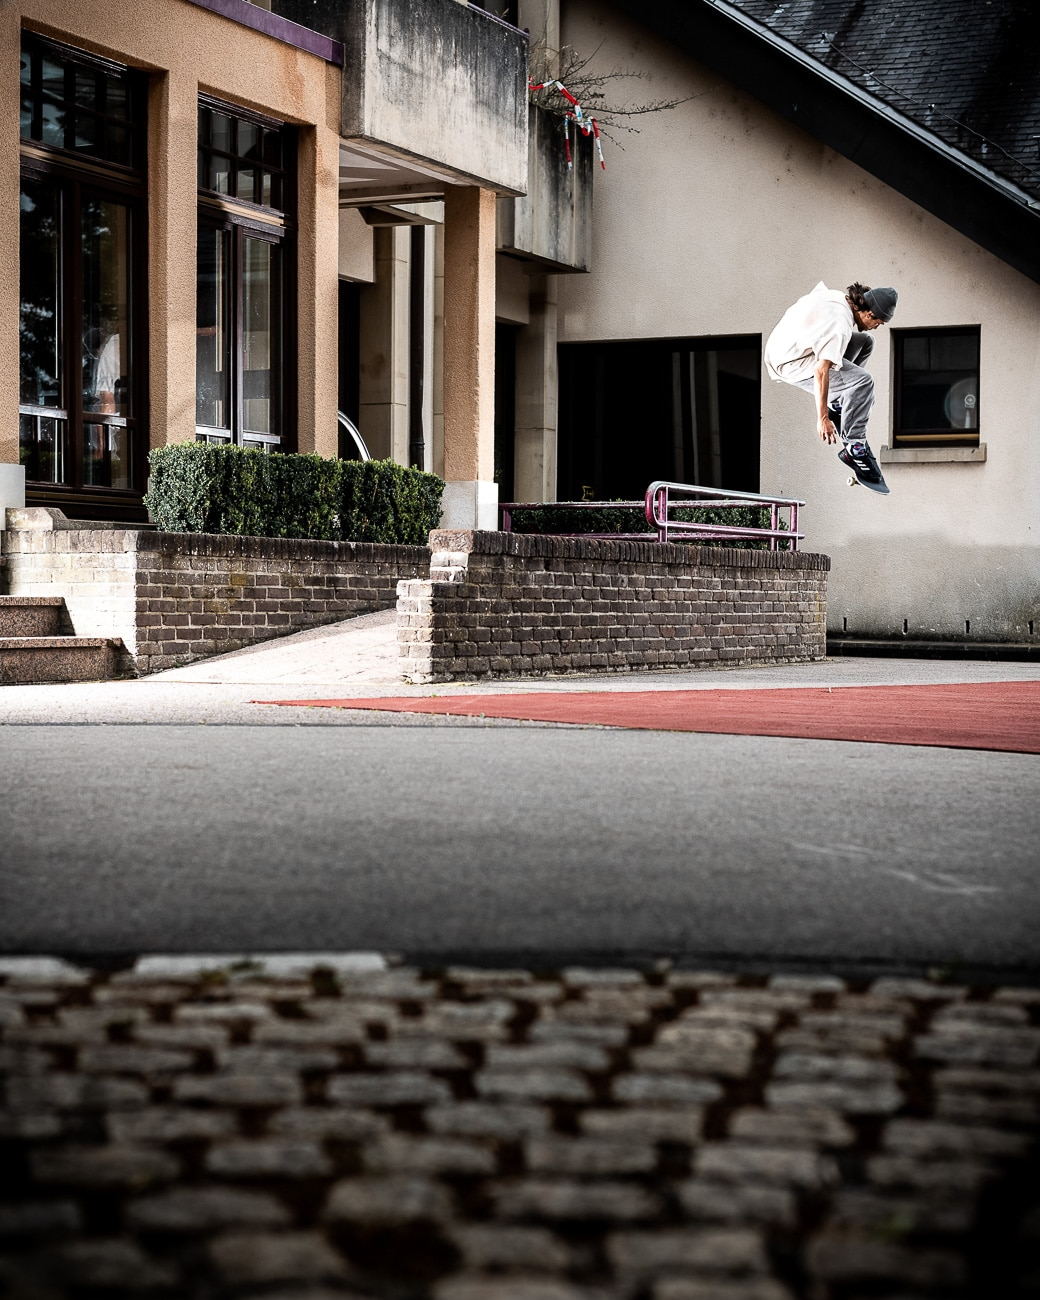 Luxemburg-irregularskatemag-tour-31